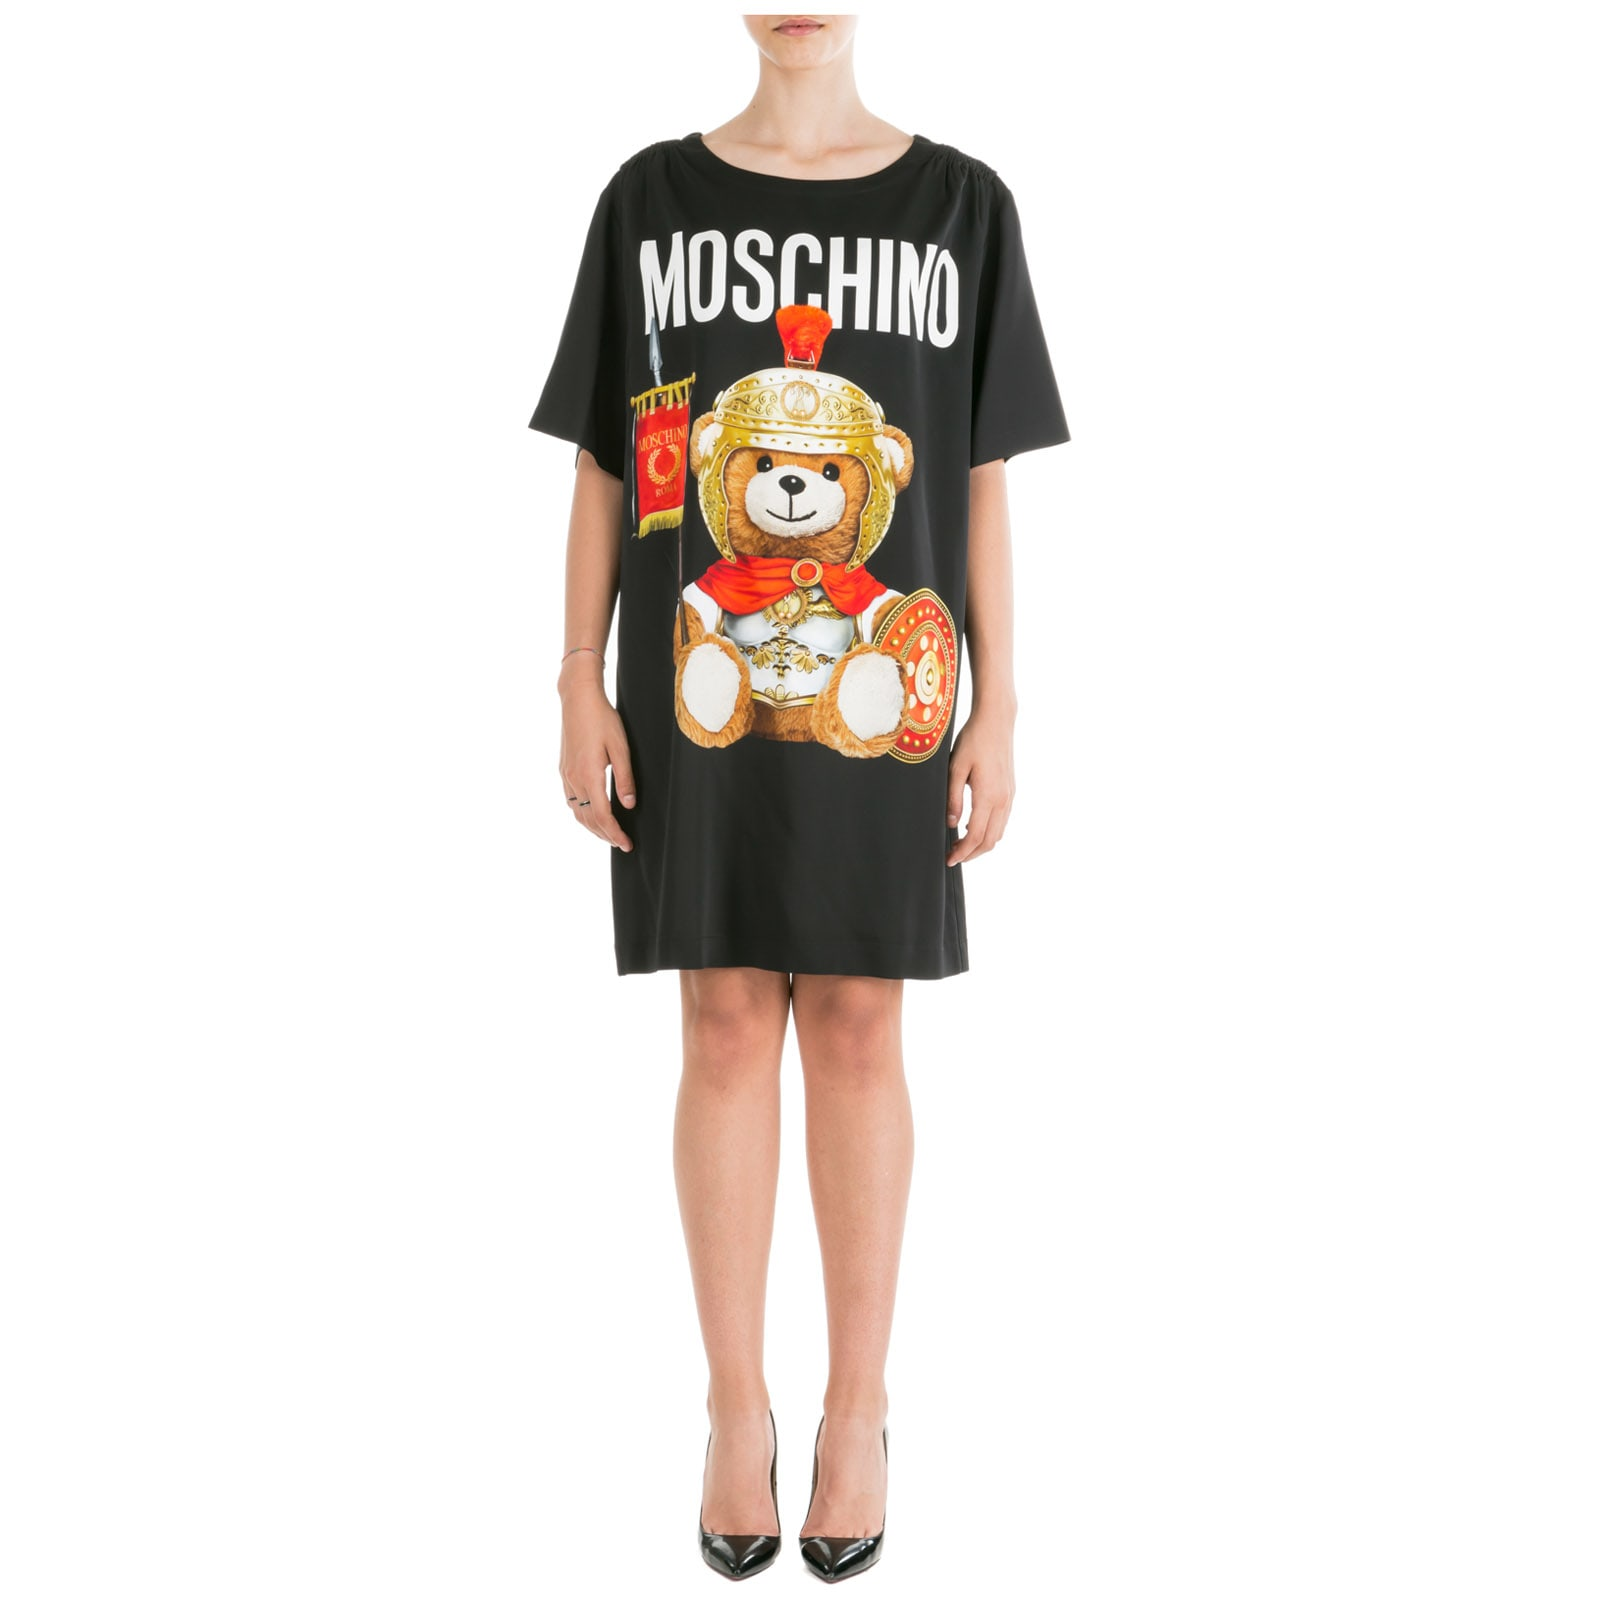 Moschino Short Mini Dress Short Sleeve Roman Teddy Bear